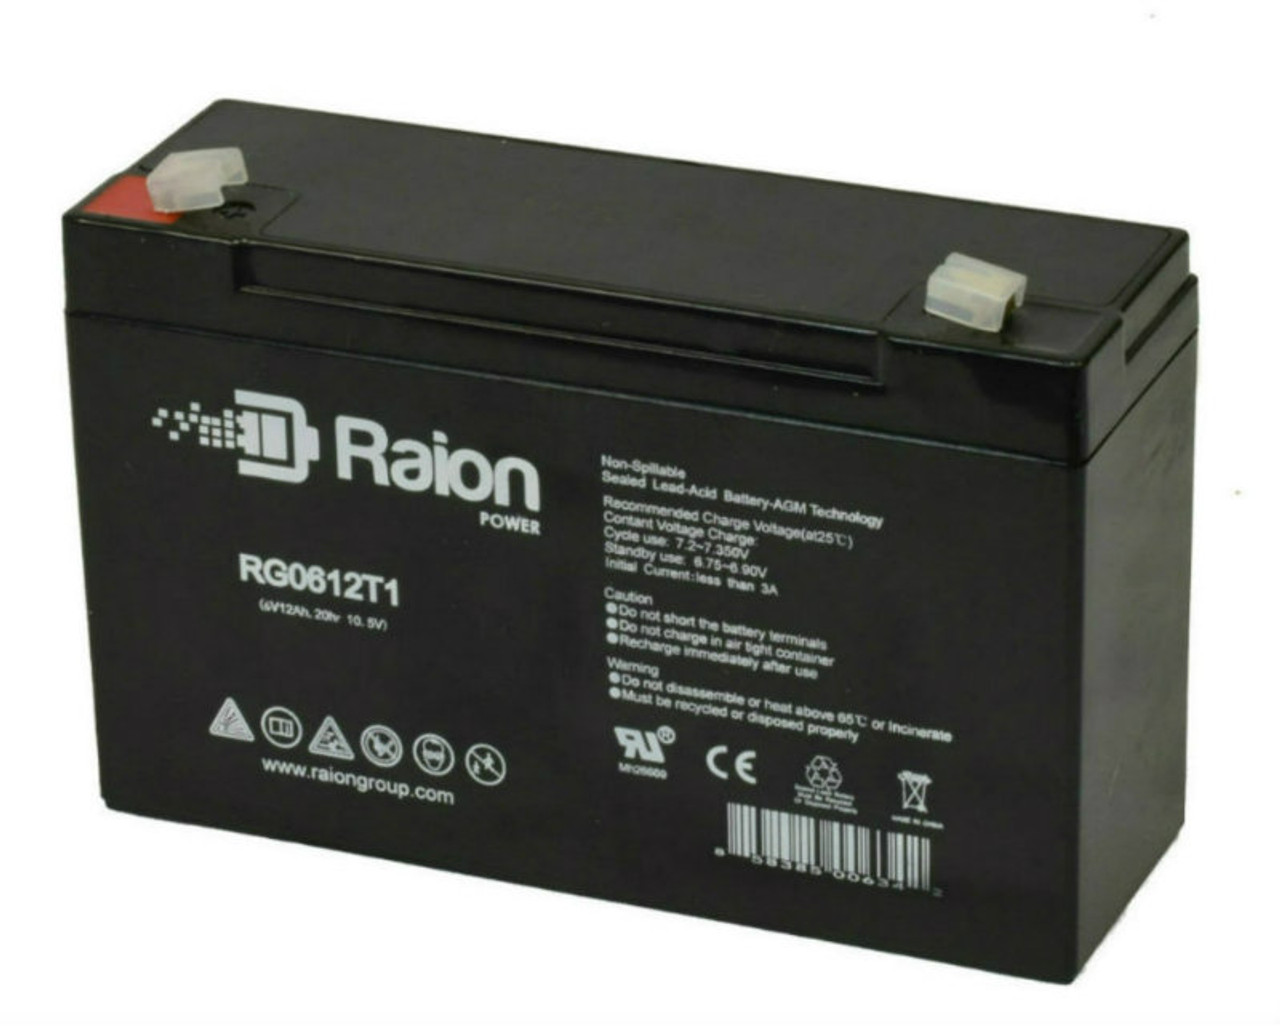 Raion Power RG06120T1 Replacement Battery Pack for Dynaray S18169 emergency light